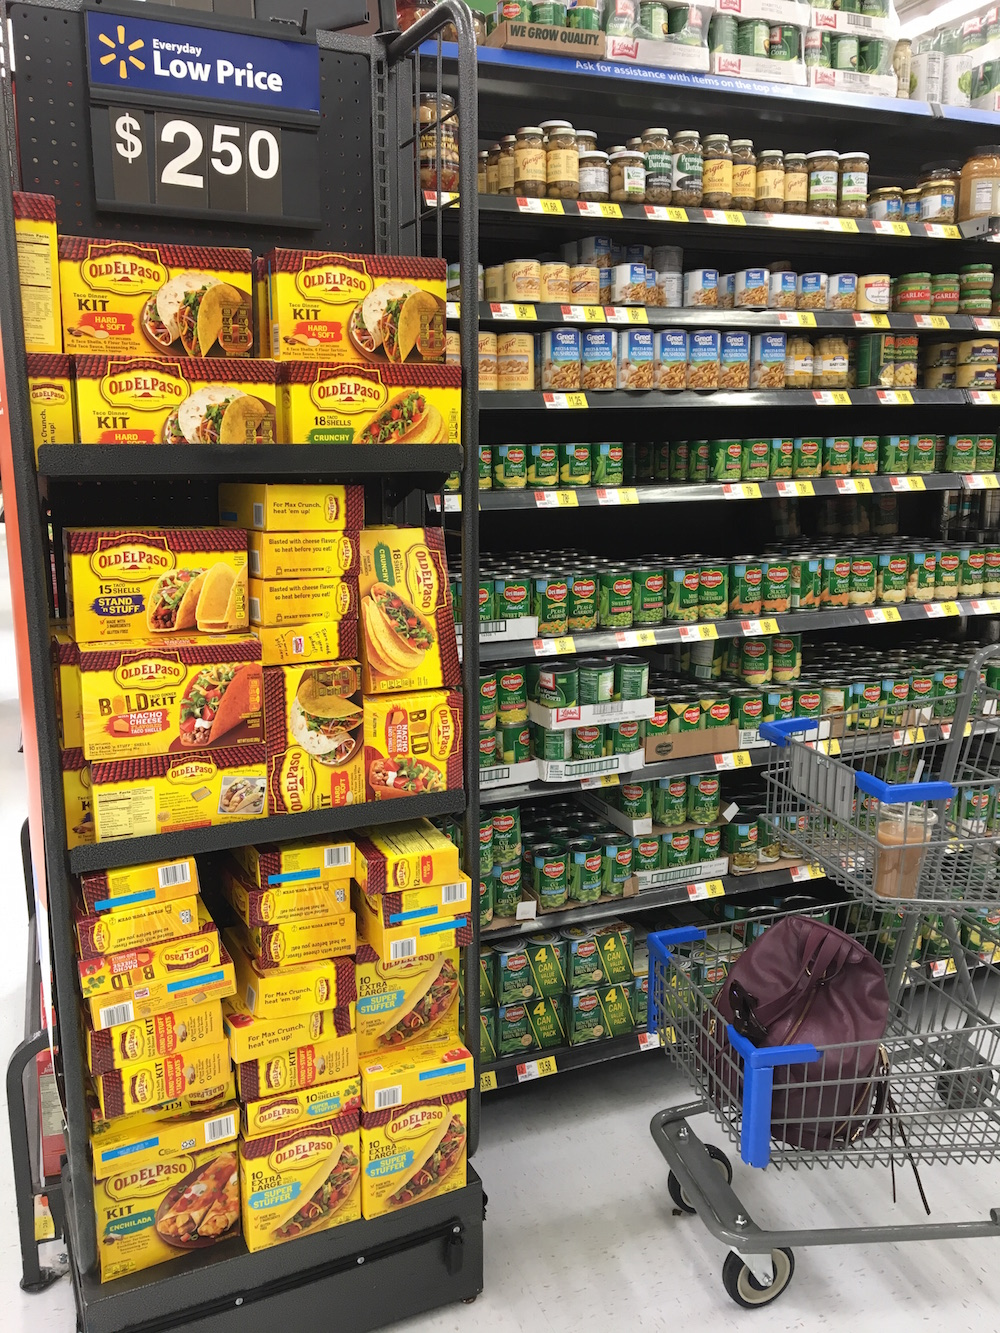 so many Old El Paso options at Walmart